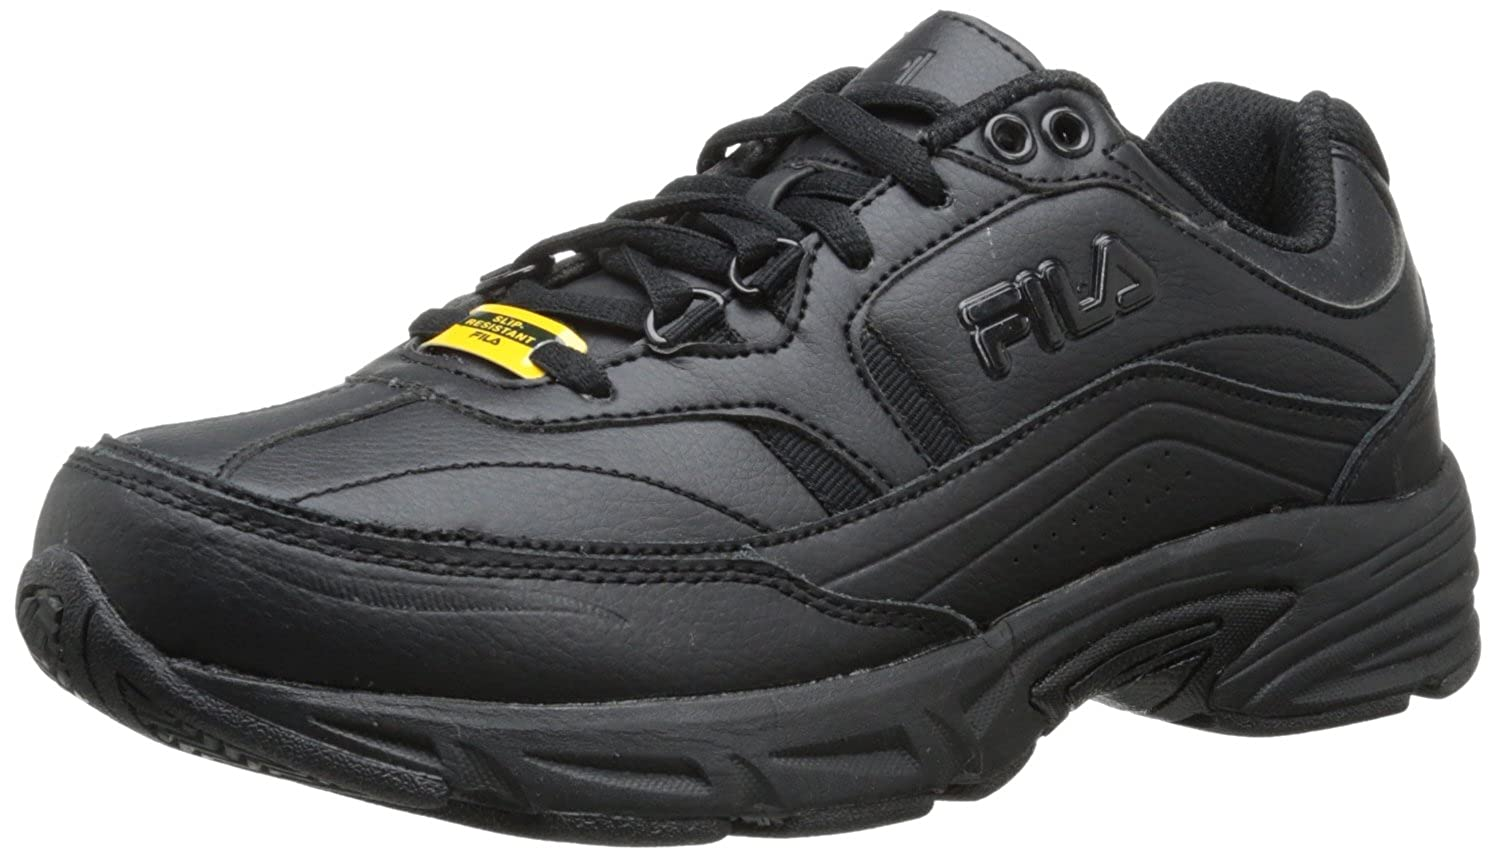 c0991fe8039687 Amazon.com  Fila Women s Memory Workshift Slip Resistant Work Shoe  Shoes